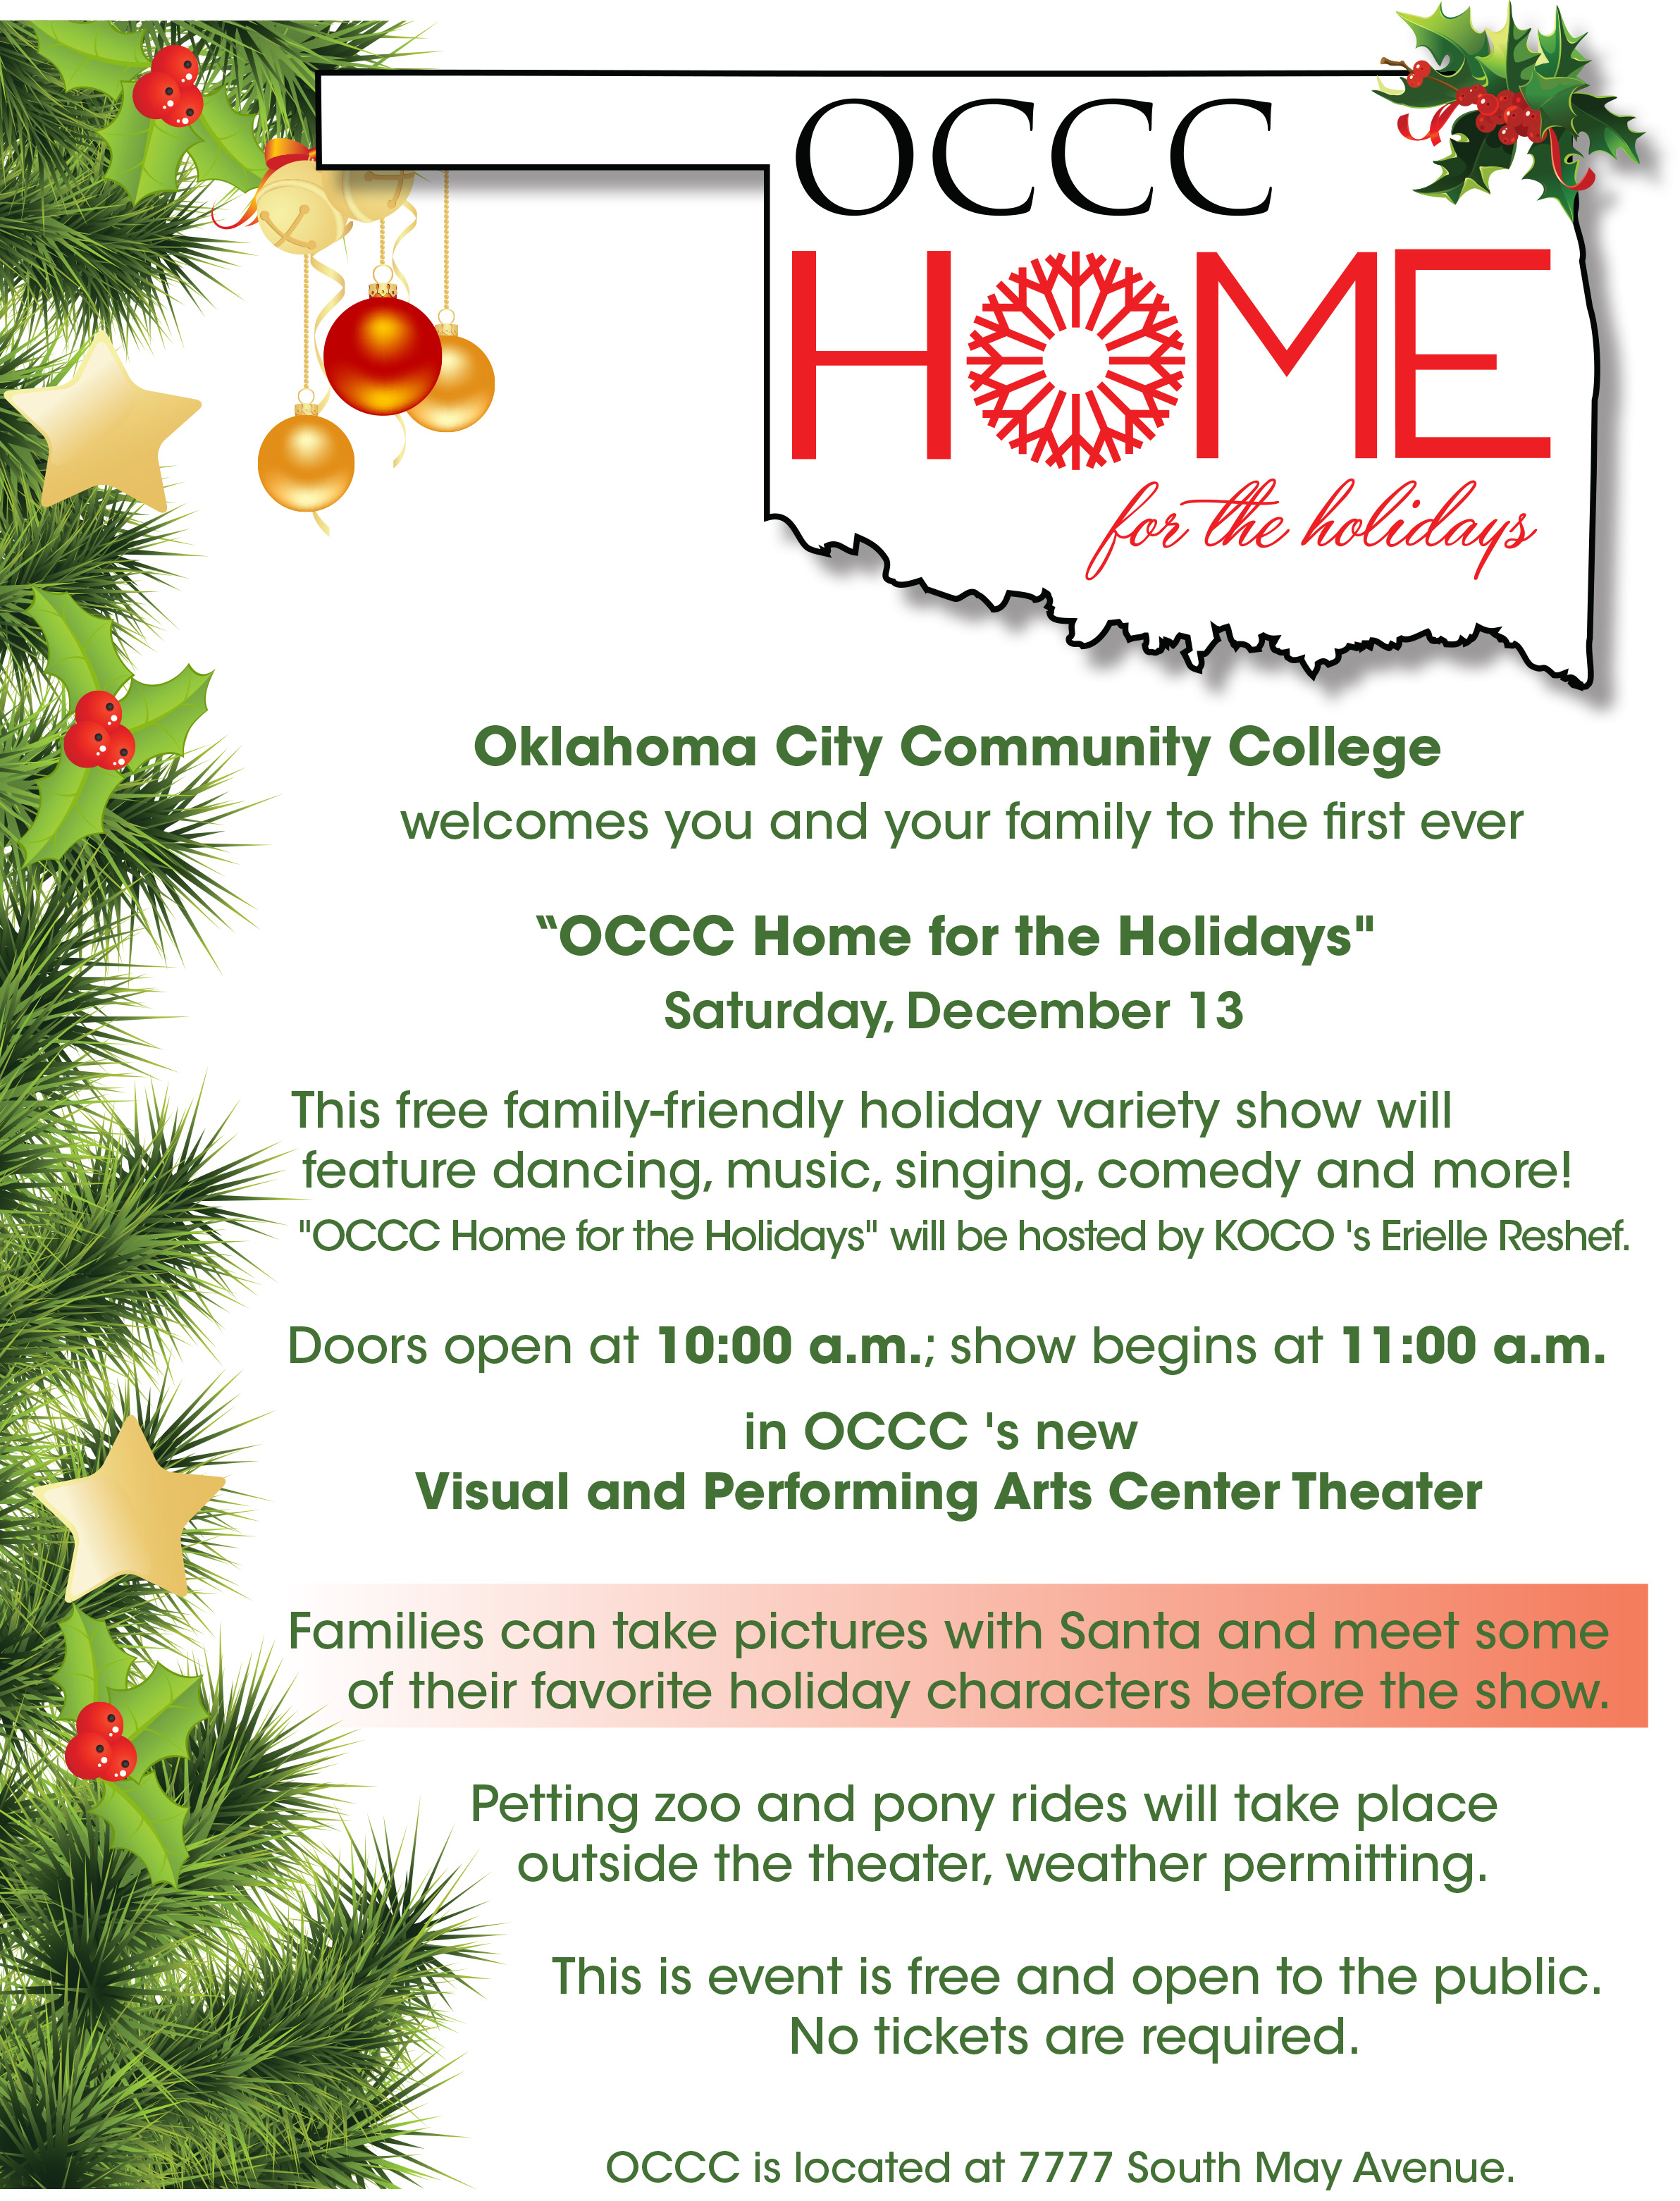 Family-friendly holiday show scheduled for Dec. 13